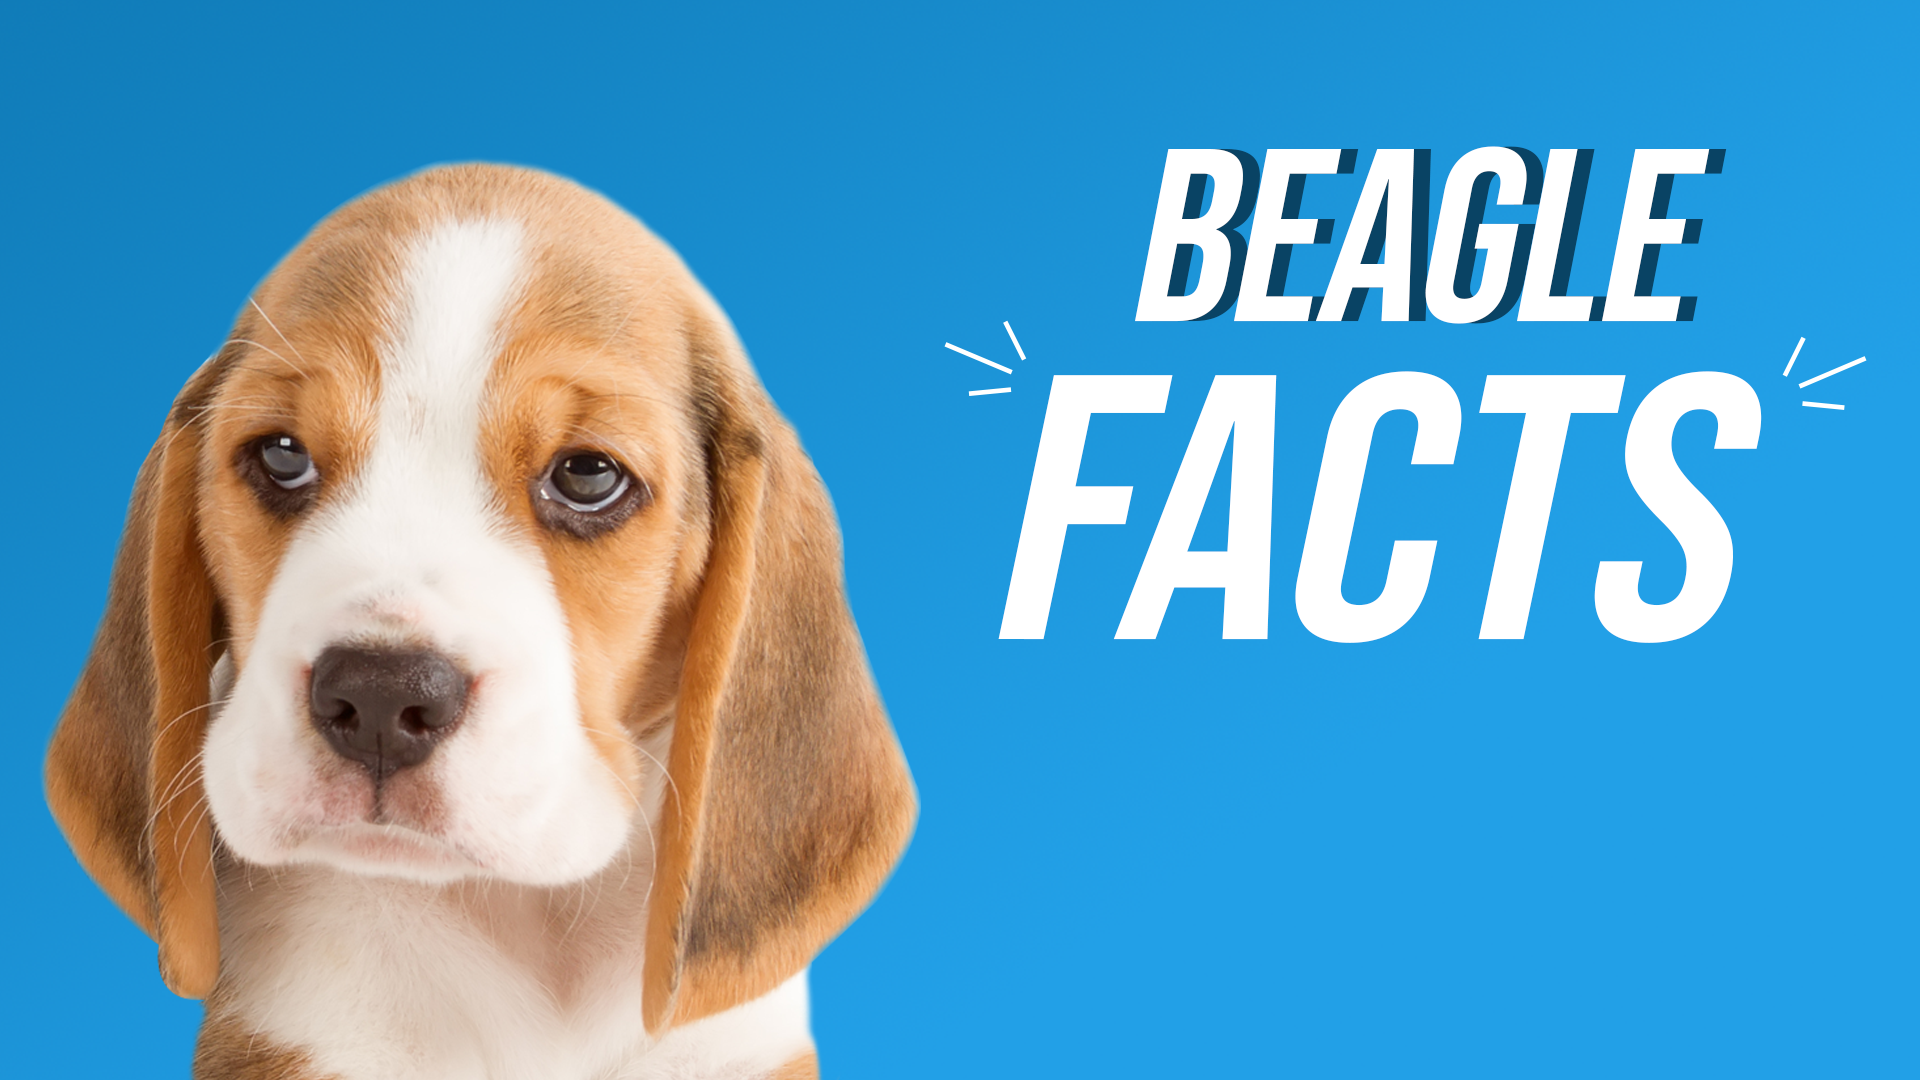 Hey! I'm a Beagle, and here are some cool facts about me! 🐶 🐾 #beagle #beagles #beaglegang #beaglepuppies #beaglemania #beagleworld #beaglemania #beagledaily